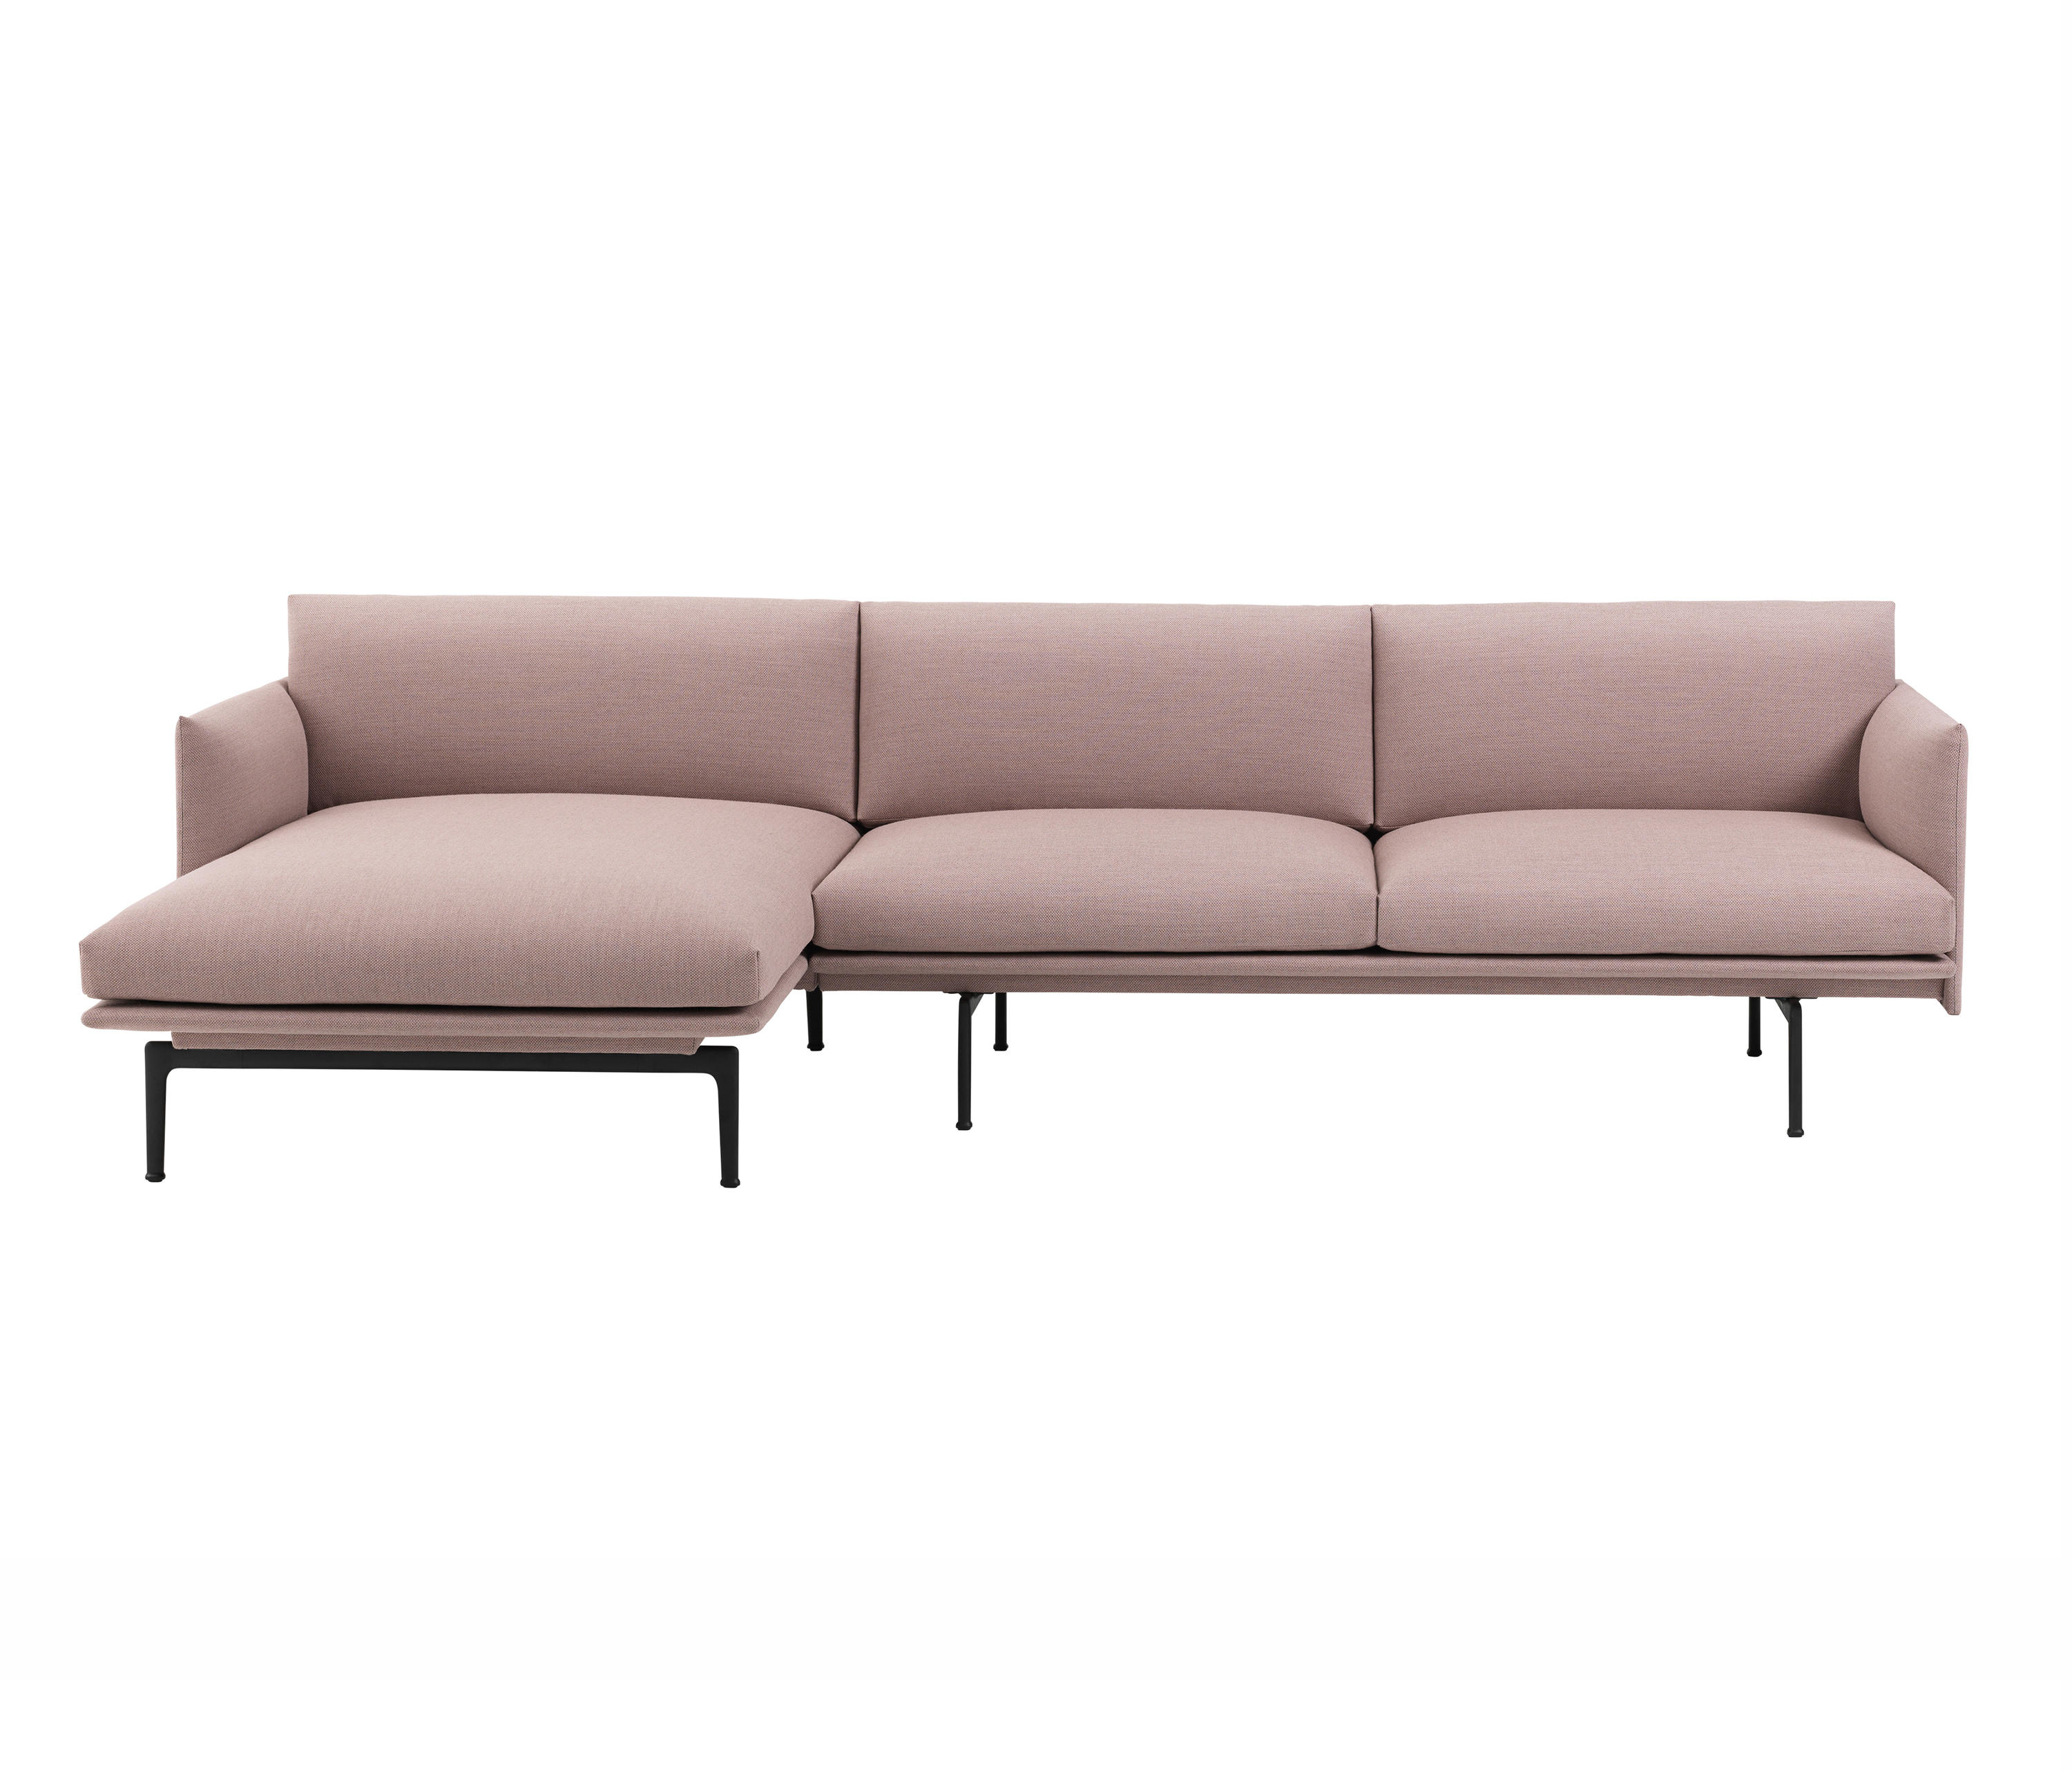 Outline Sofa Chaise Longue Left Sofas From Muuto